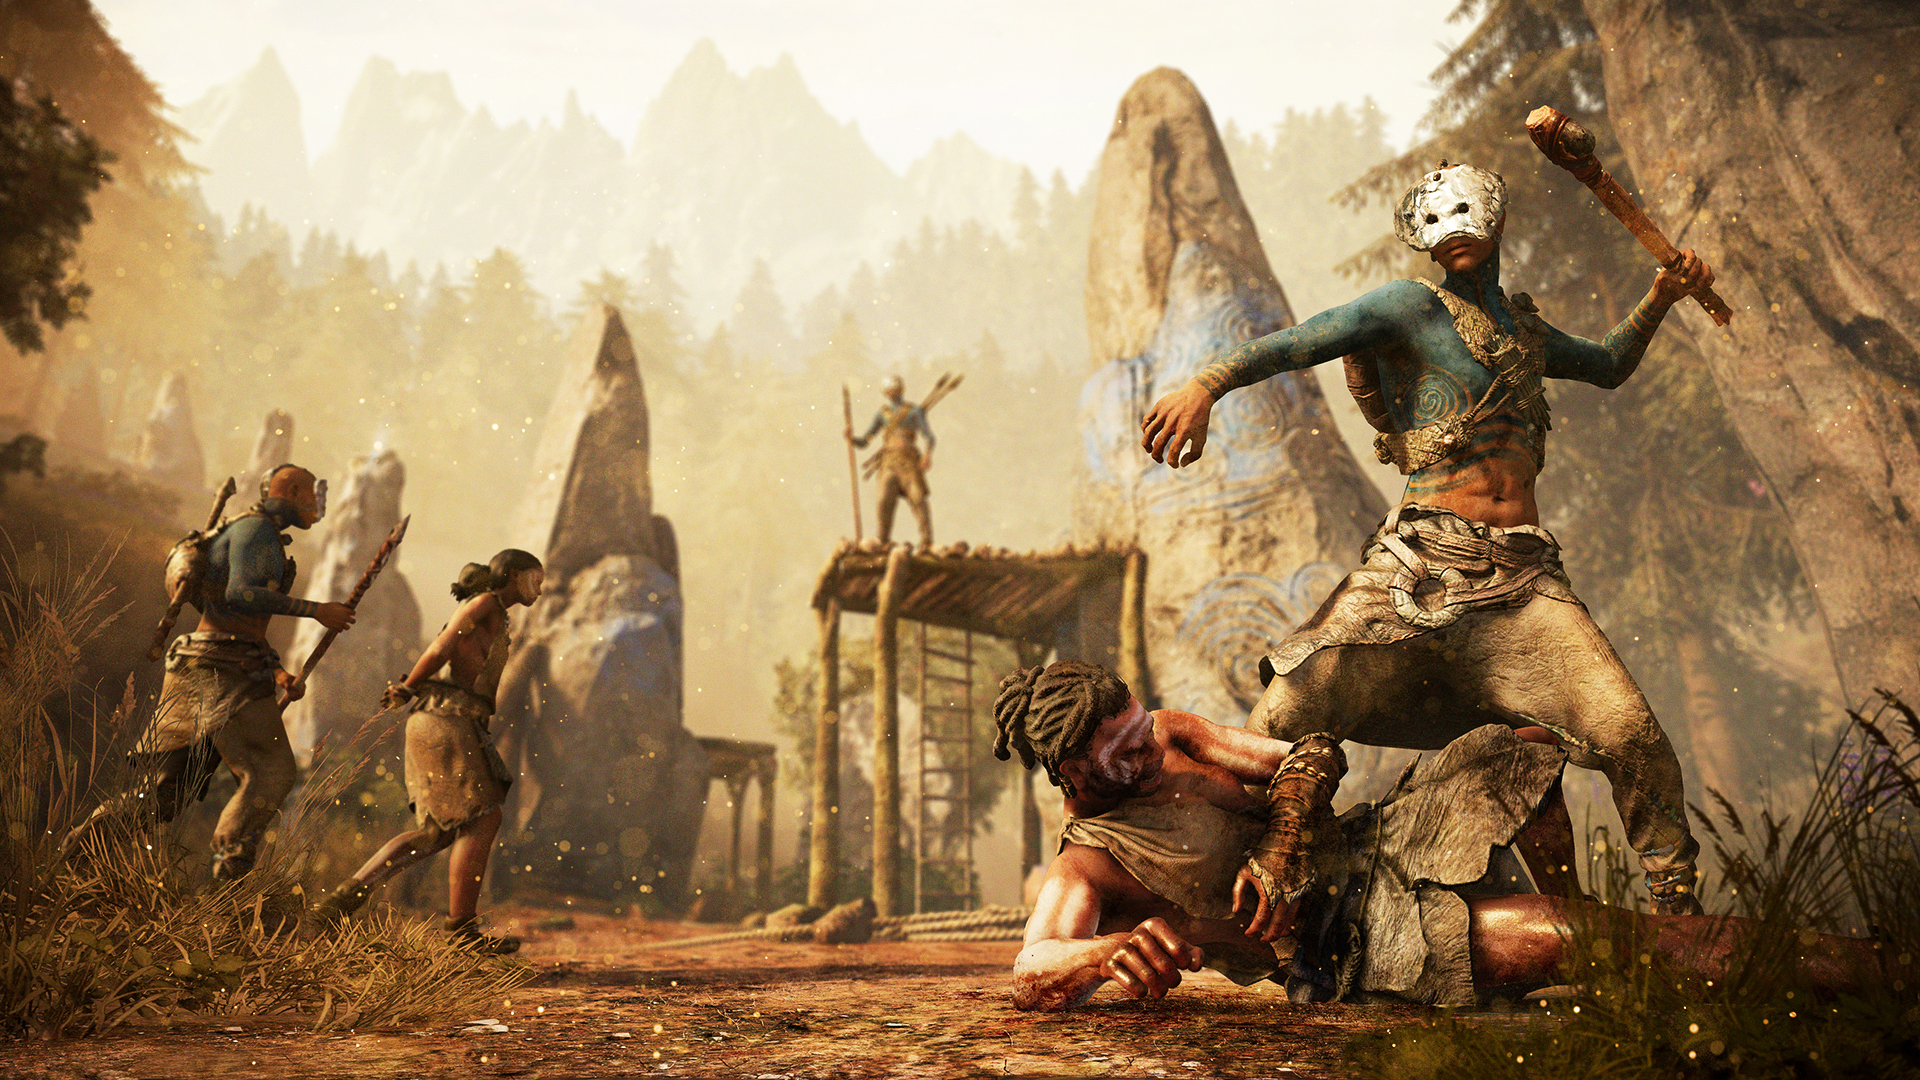 download far cry primal hd texture pack plaza release 4k display 2gb ram